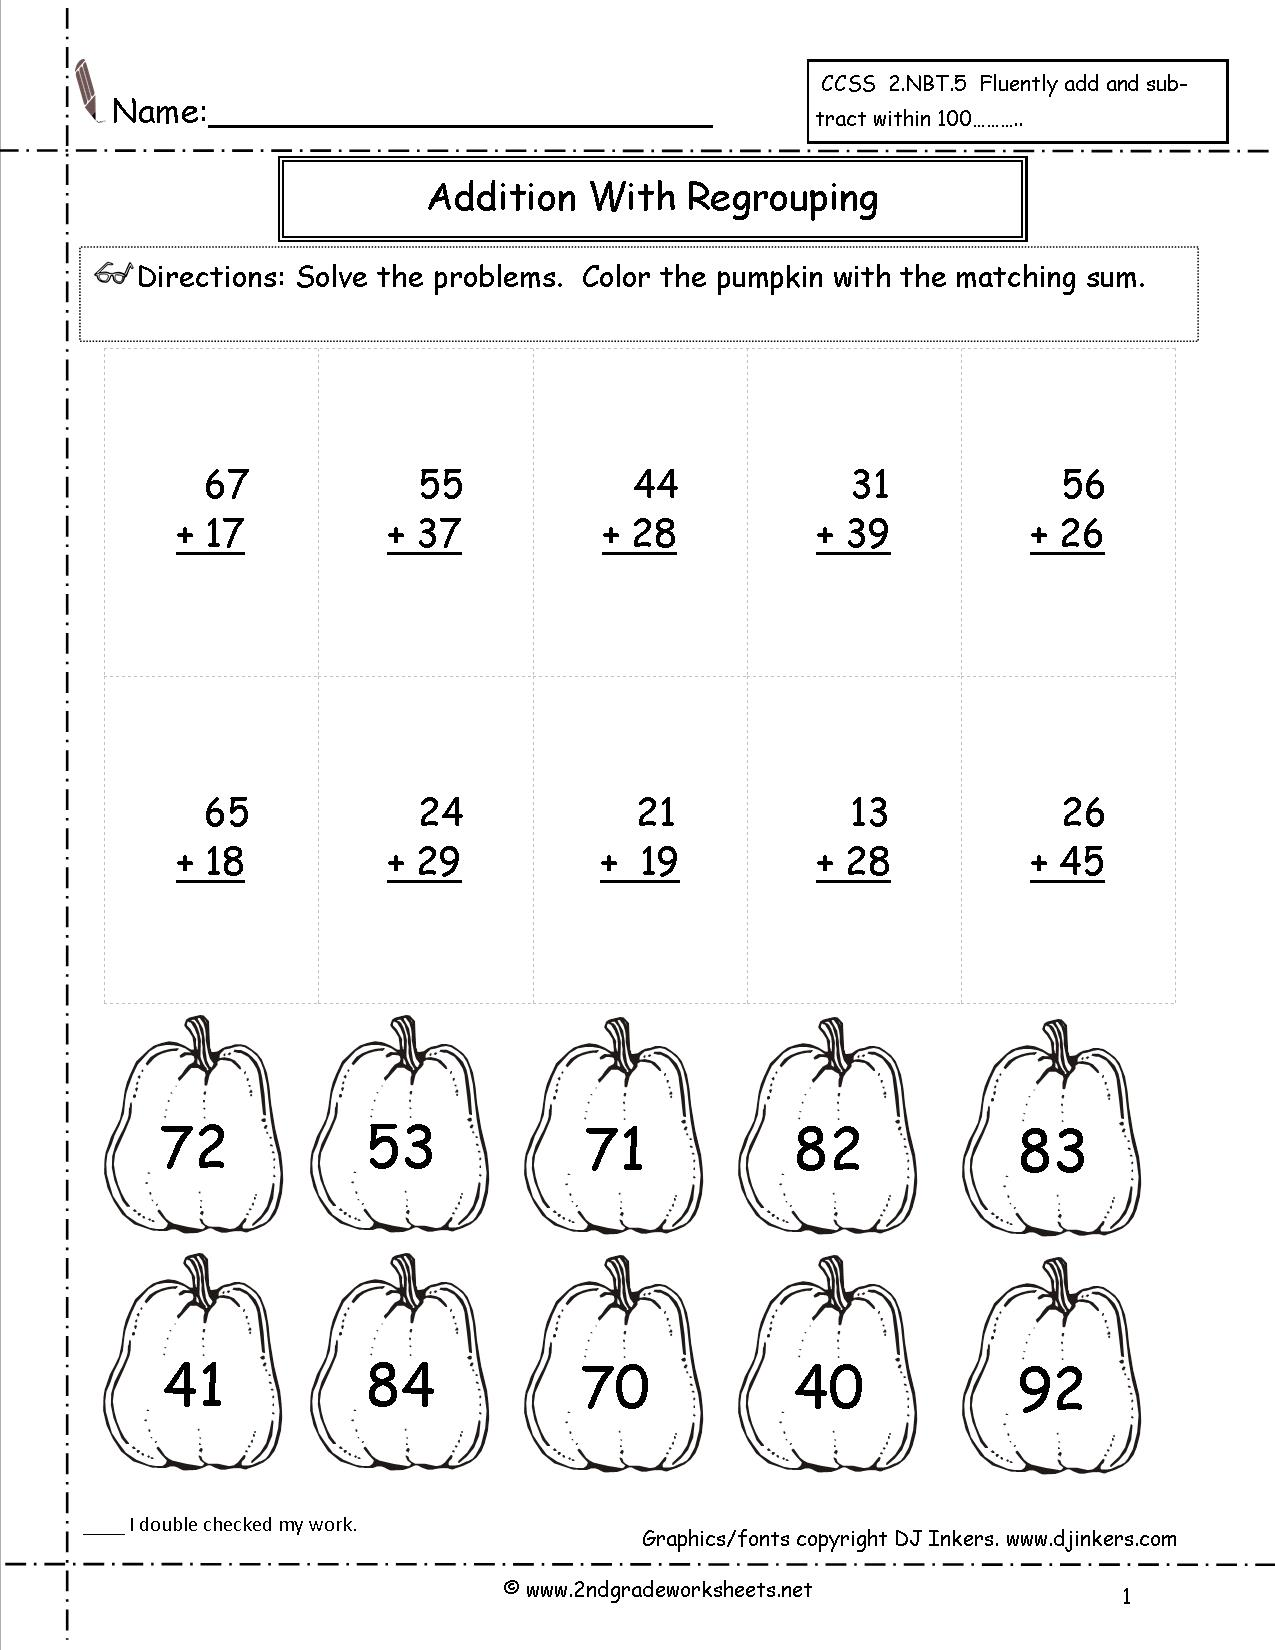 Pumpkin Addition Worksheet The Best Worksheets Image Collection